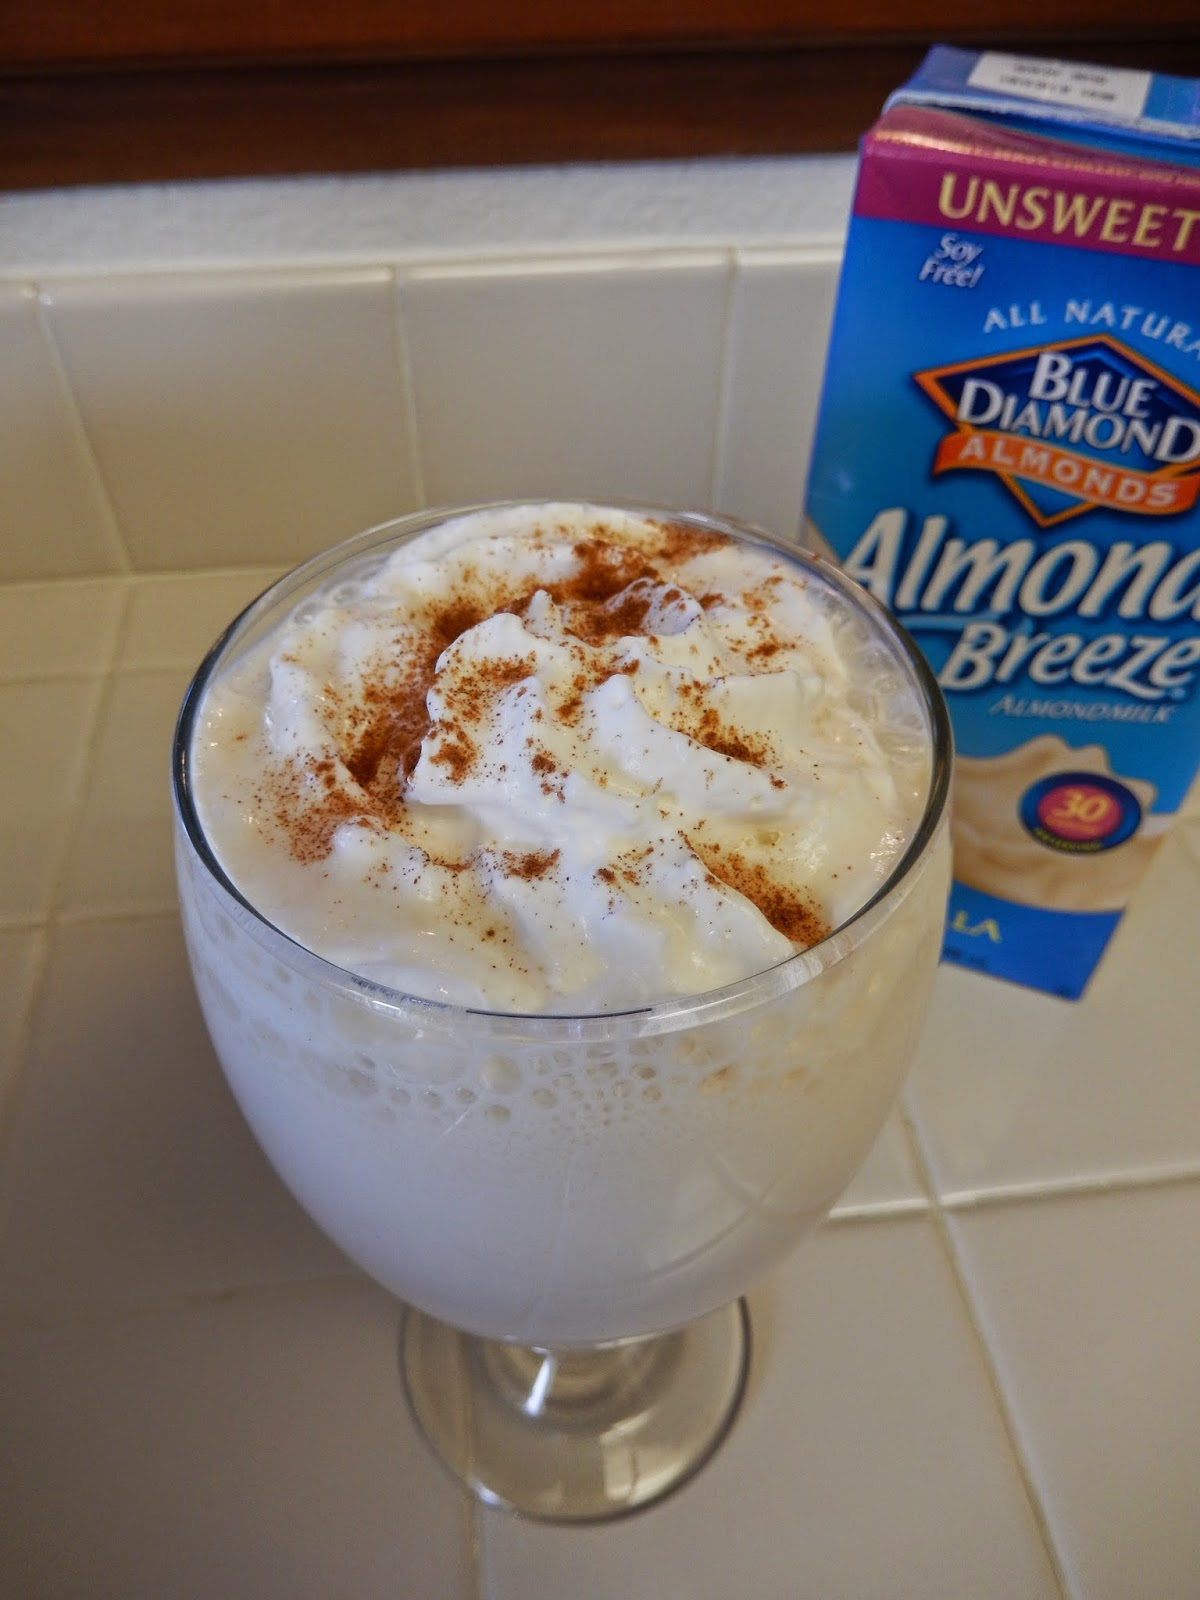 Fauxata%2BHorchata%2Bwithour%2BRice%2BAlmond%2BMilk Weight Loss Recipes Almond Breeze Do Better Breakfasts